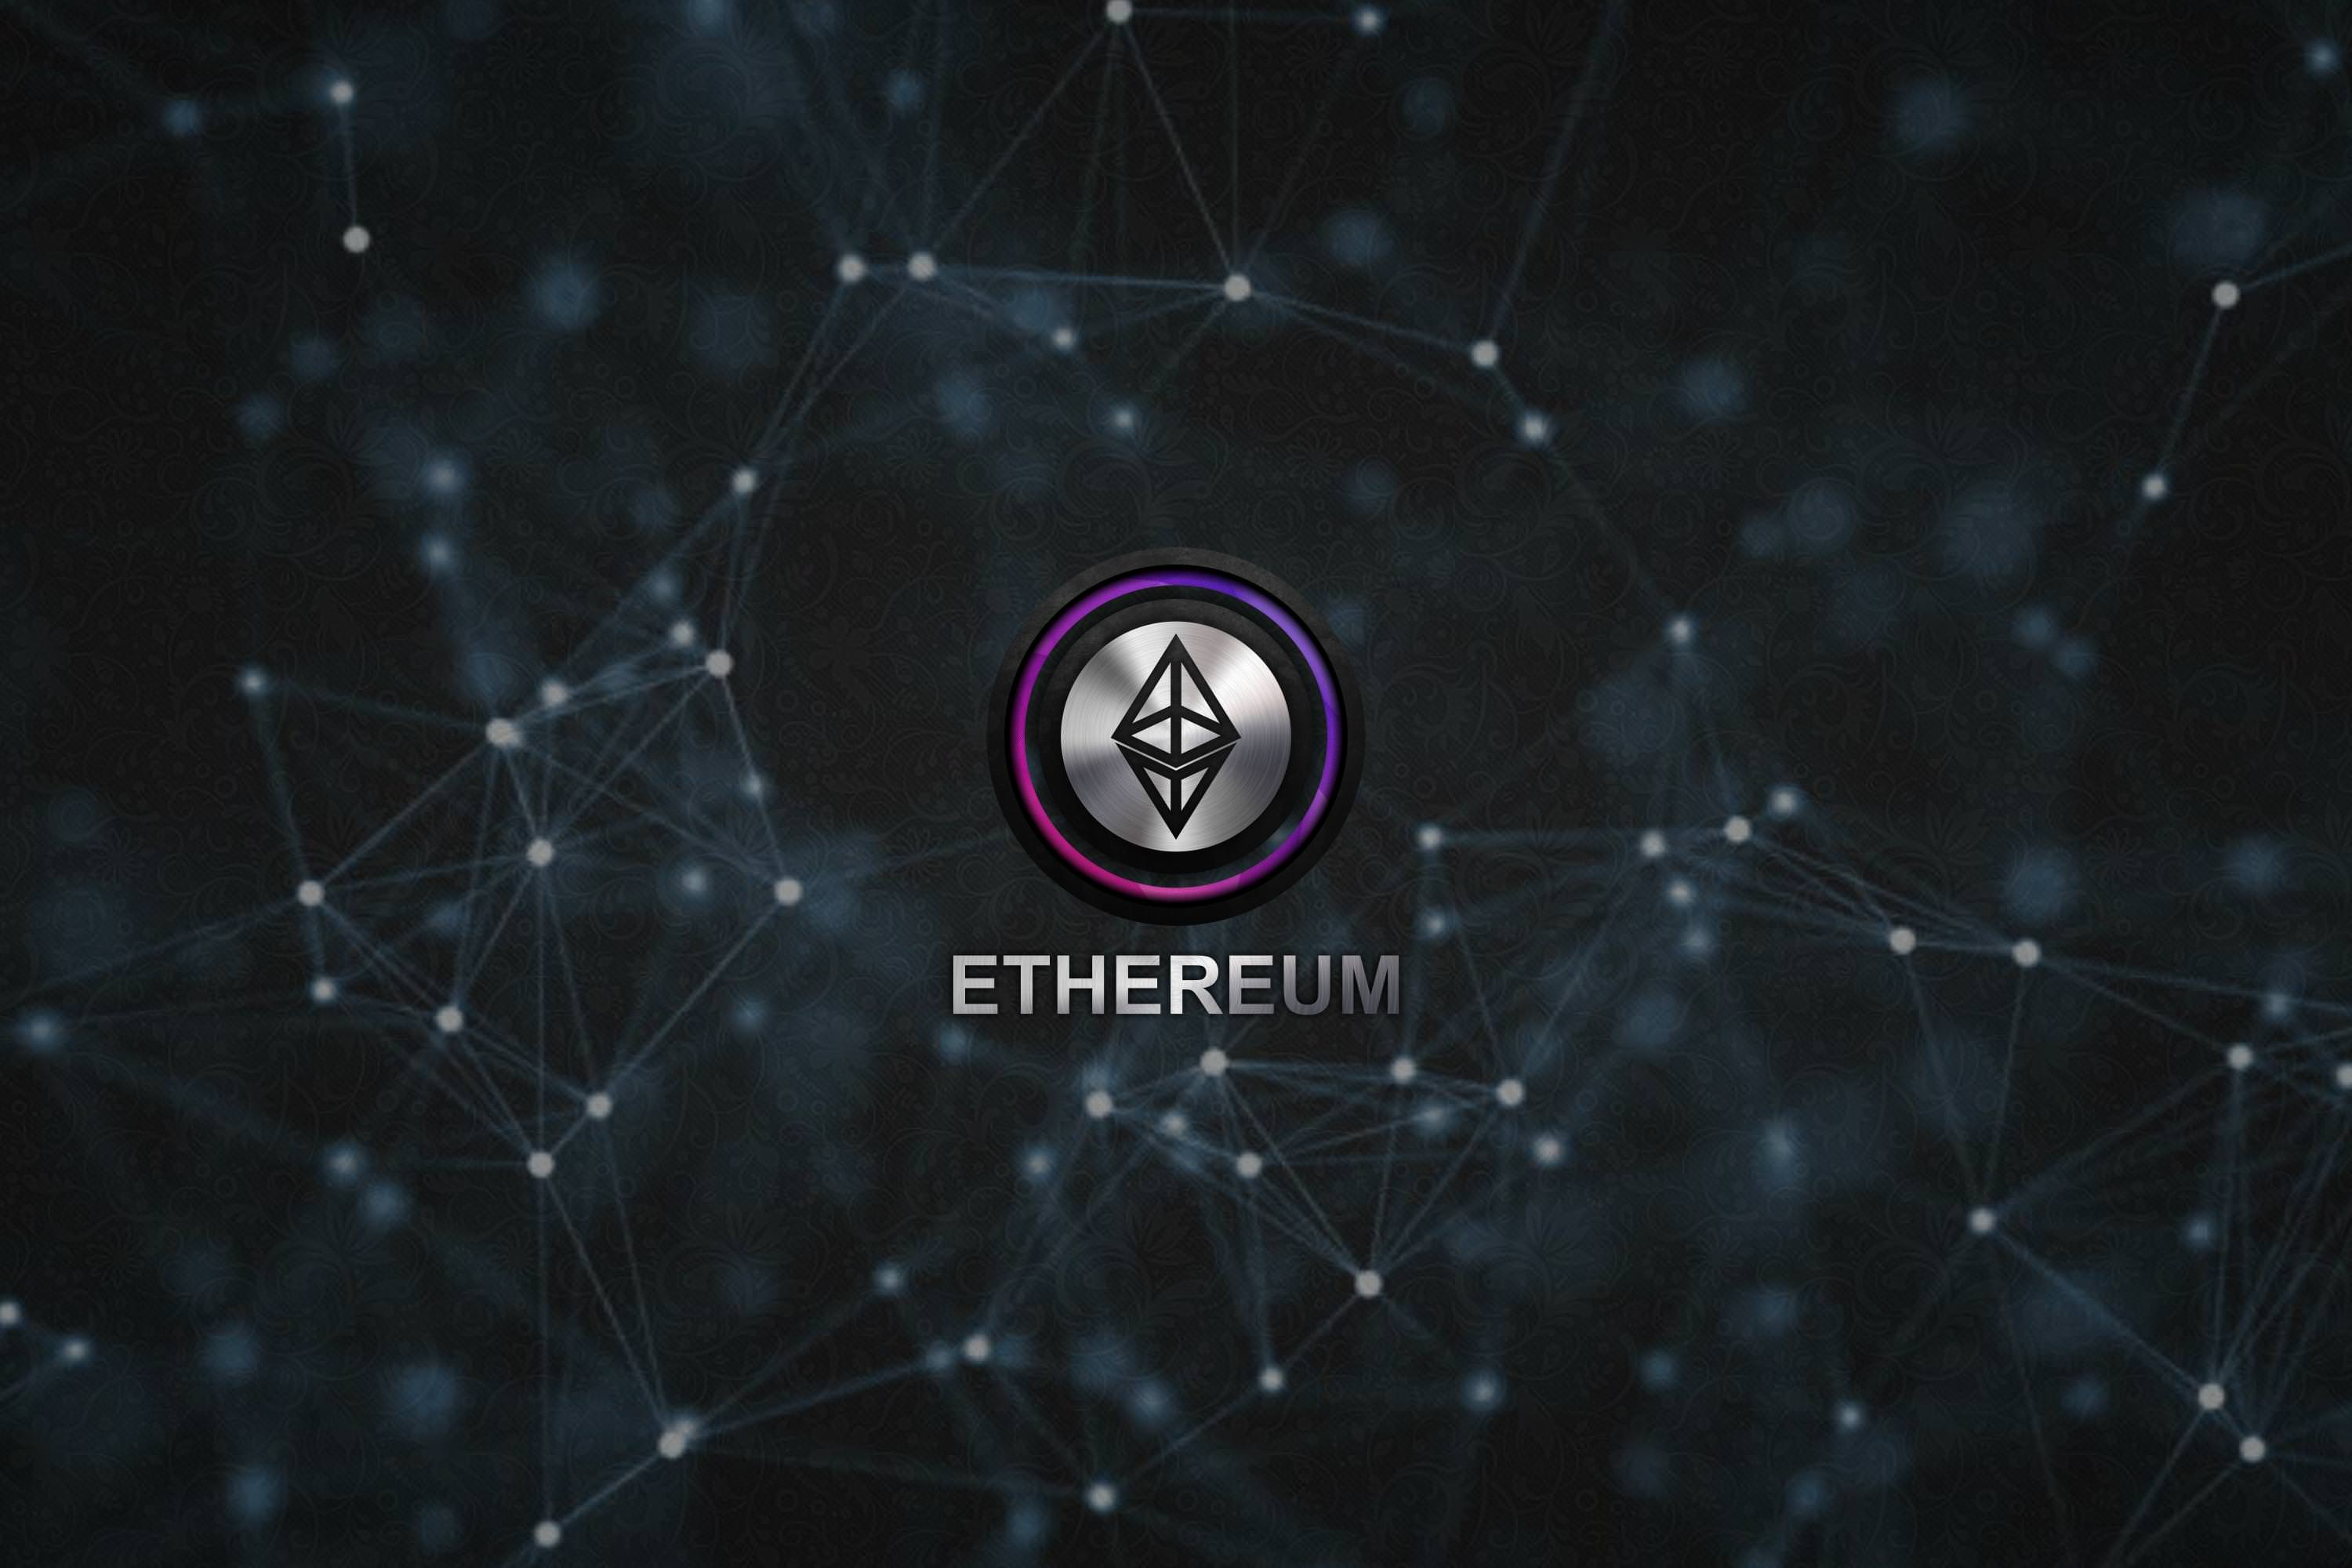 Ethereum Wallpaper   Album on Imgur 3000x2000